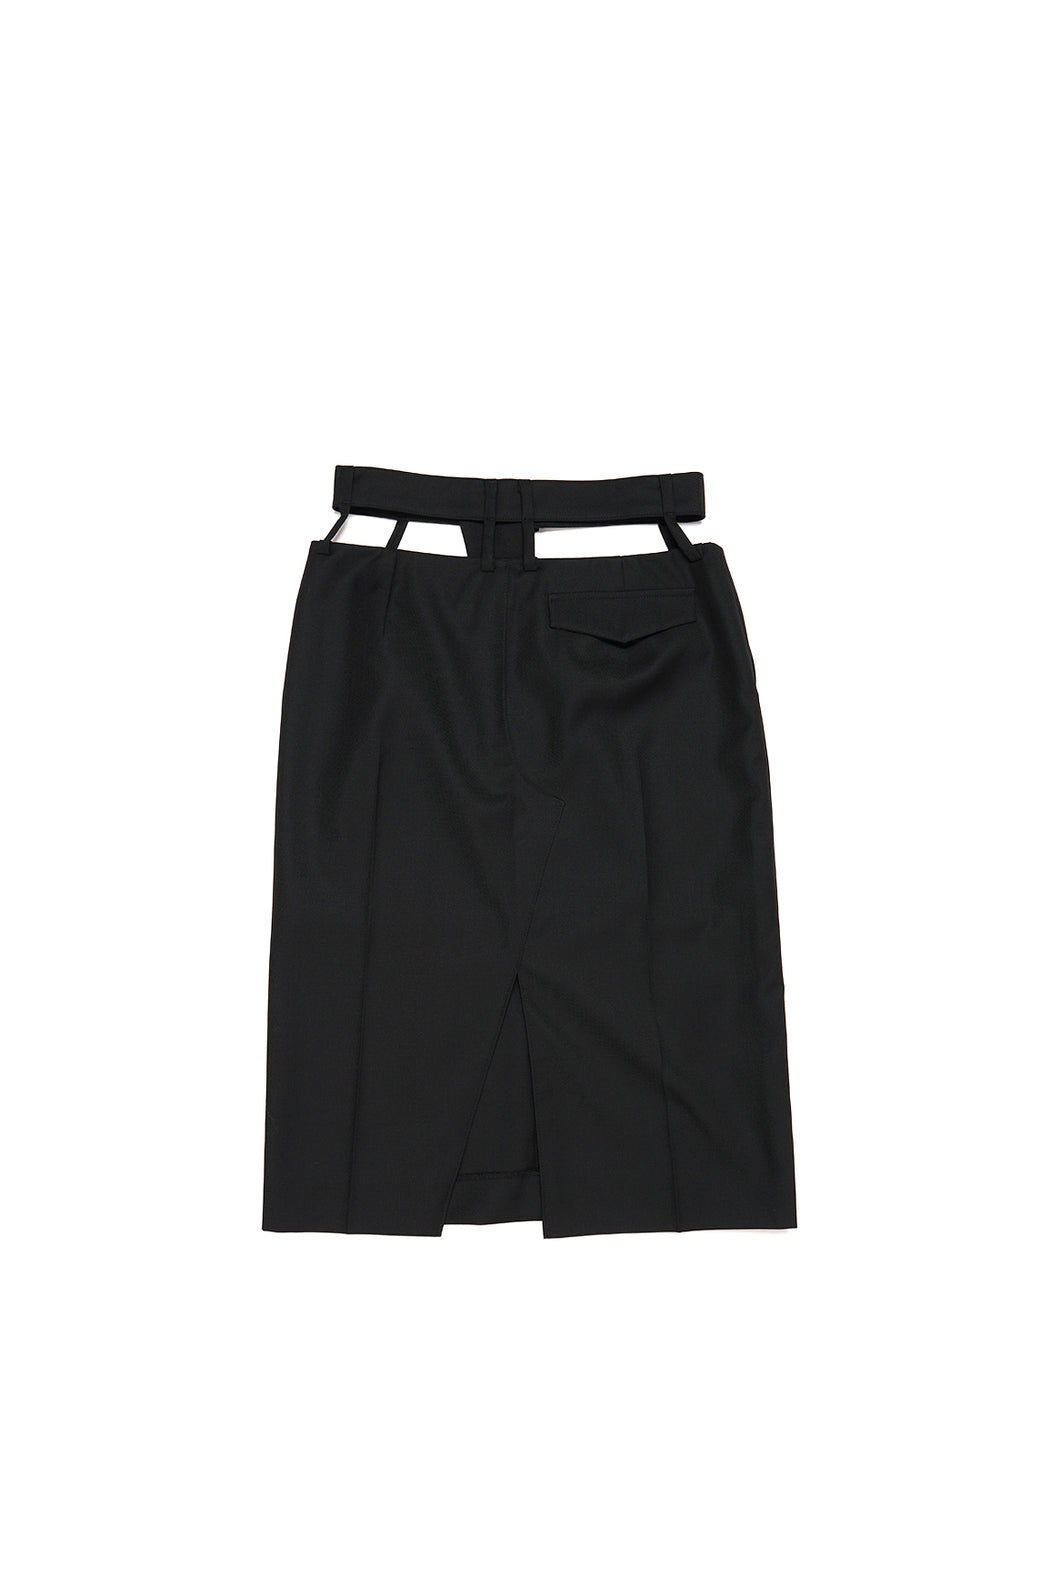 Waist Cutting Midi Skirt - Black